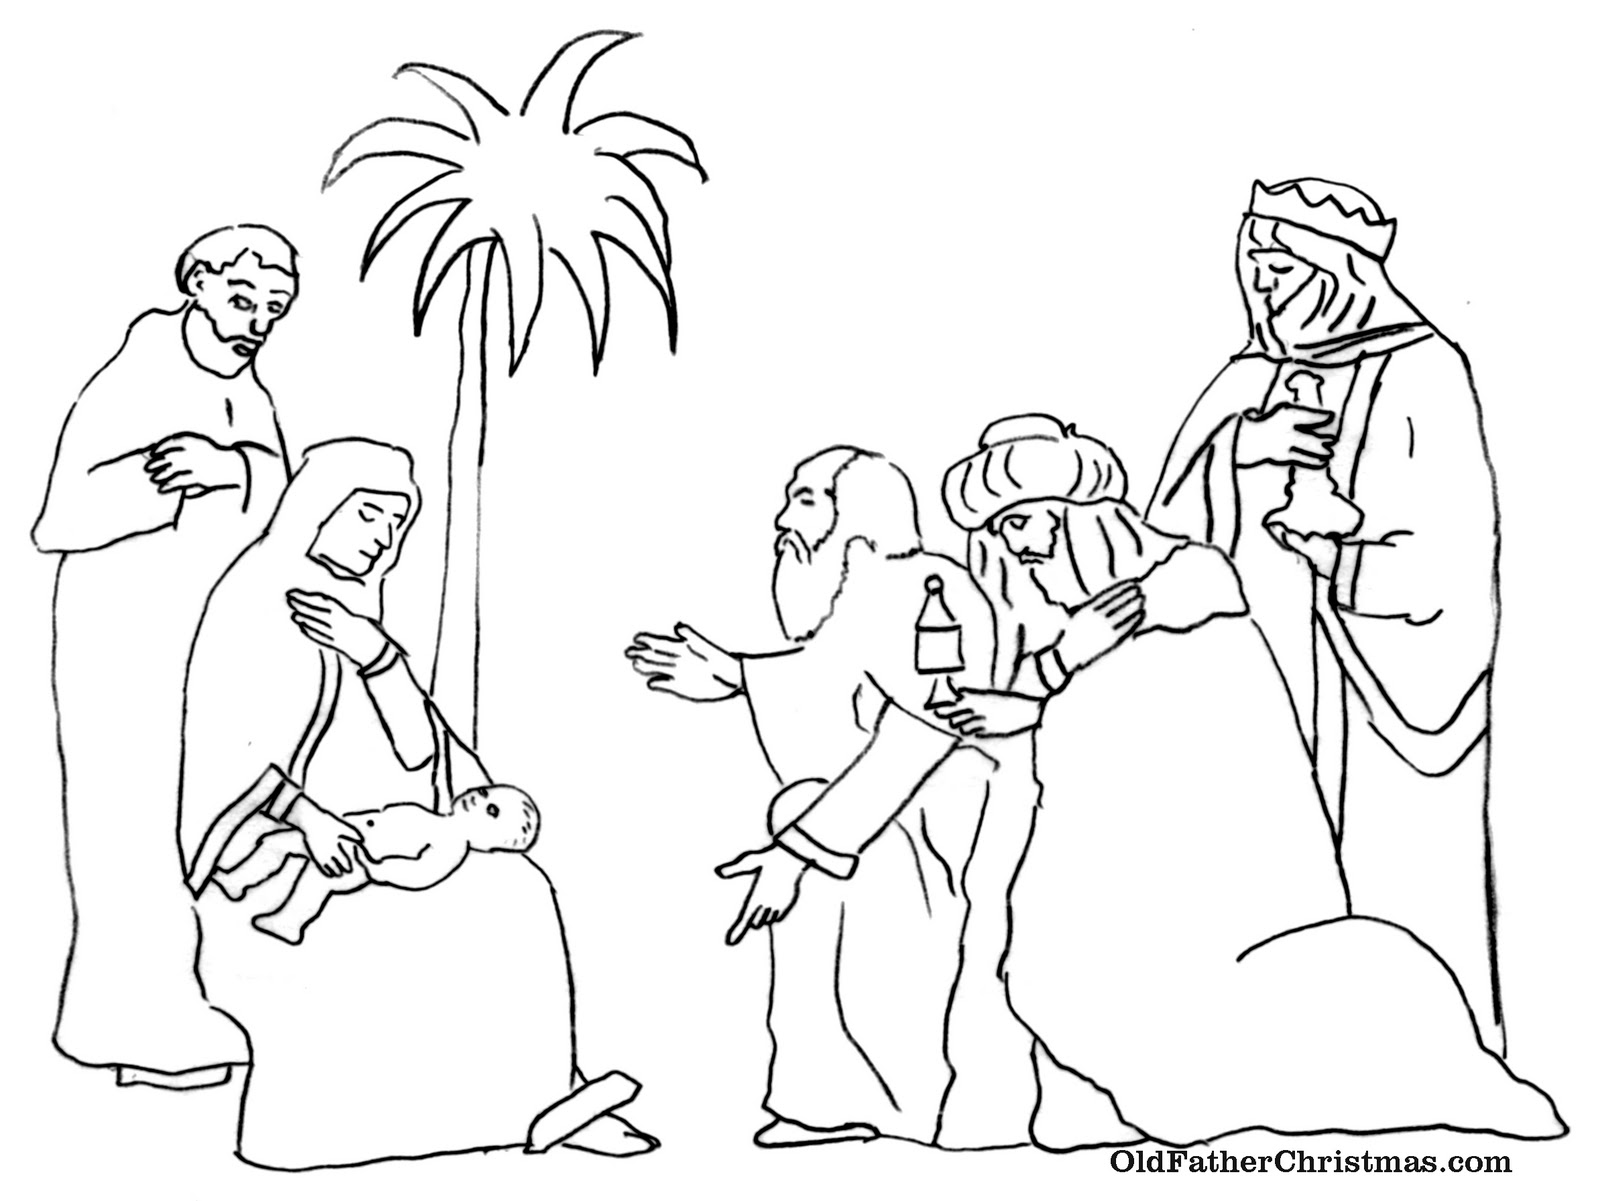 the three kings coloring pages - photo#5